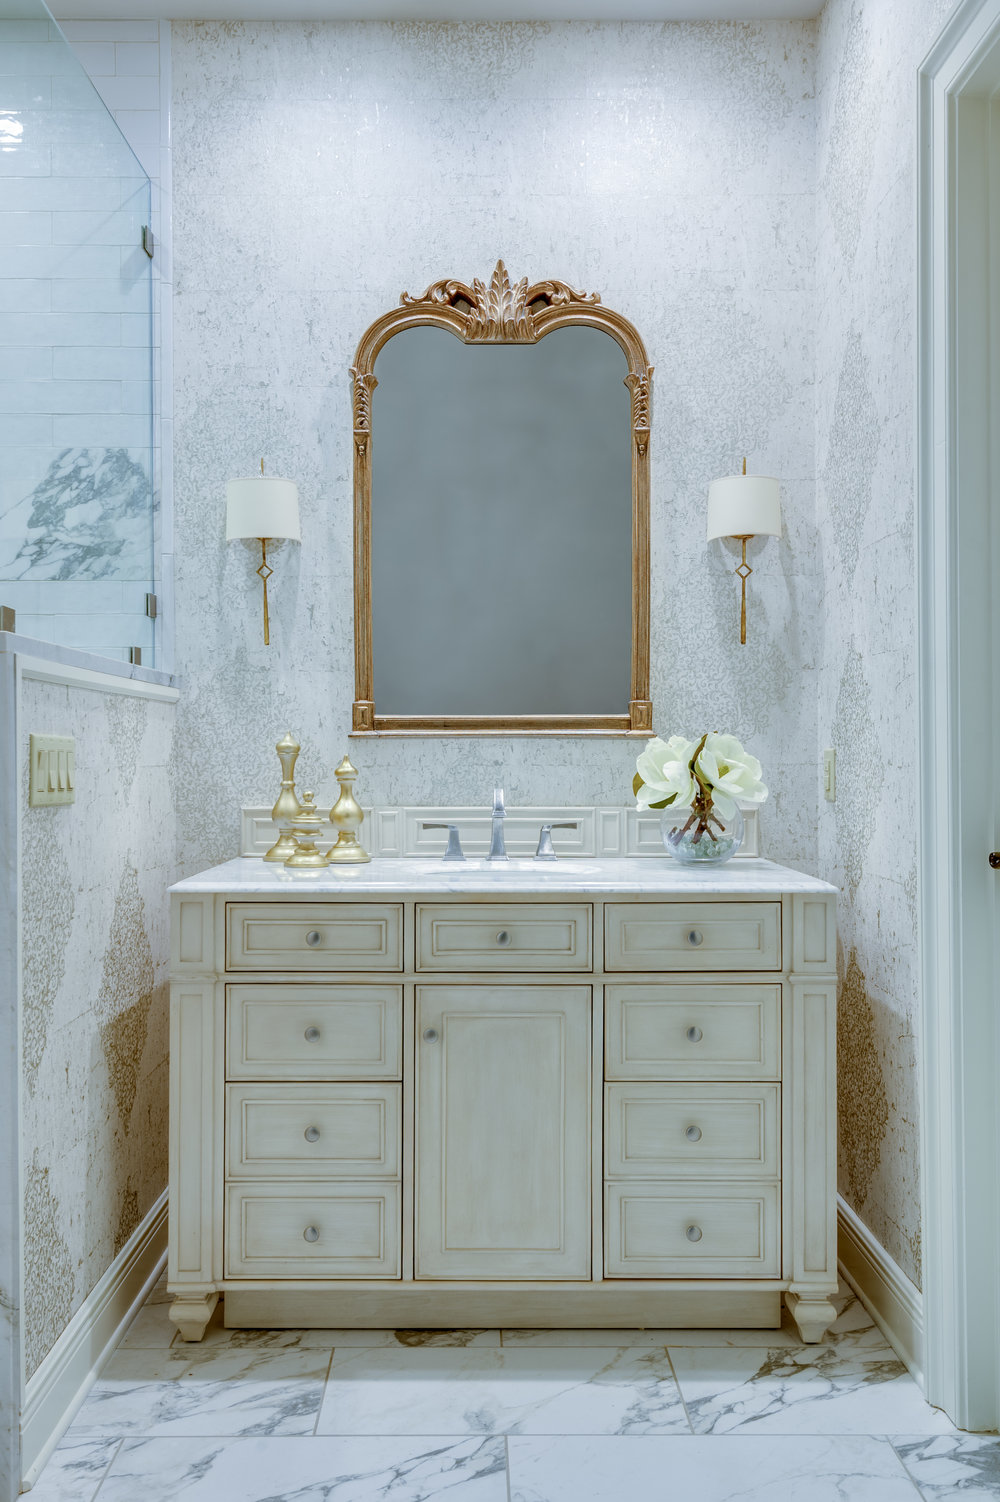 KHB Interiors old metairie new orleans interior designer uptown river ridge interior decorator old metairie vanity master bathroom custom bathroom new orleans mel .jpg